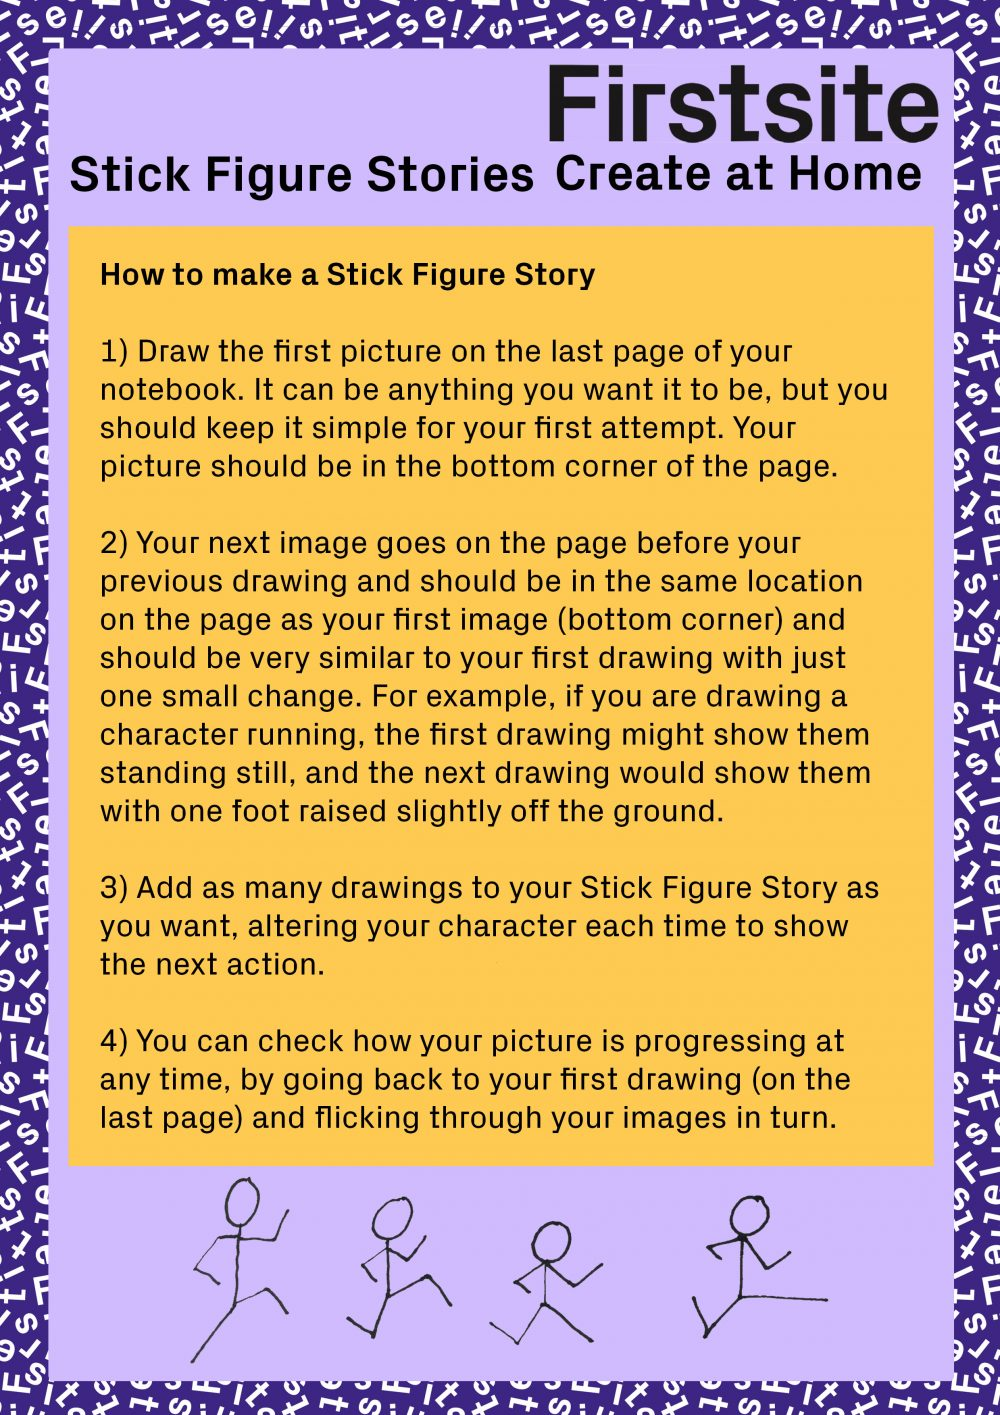 Written instructions for how to make a stick figure story page 3 of 3